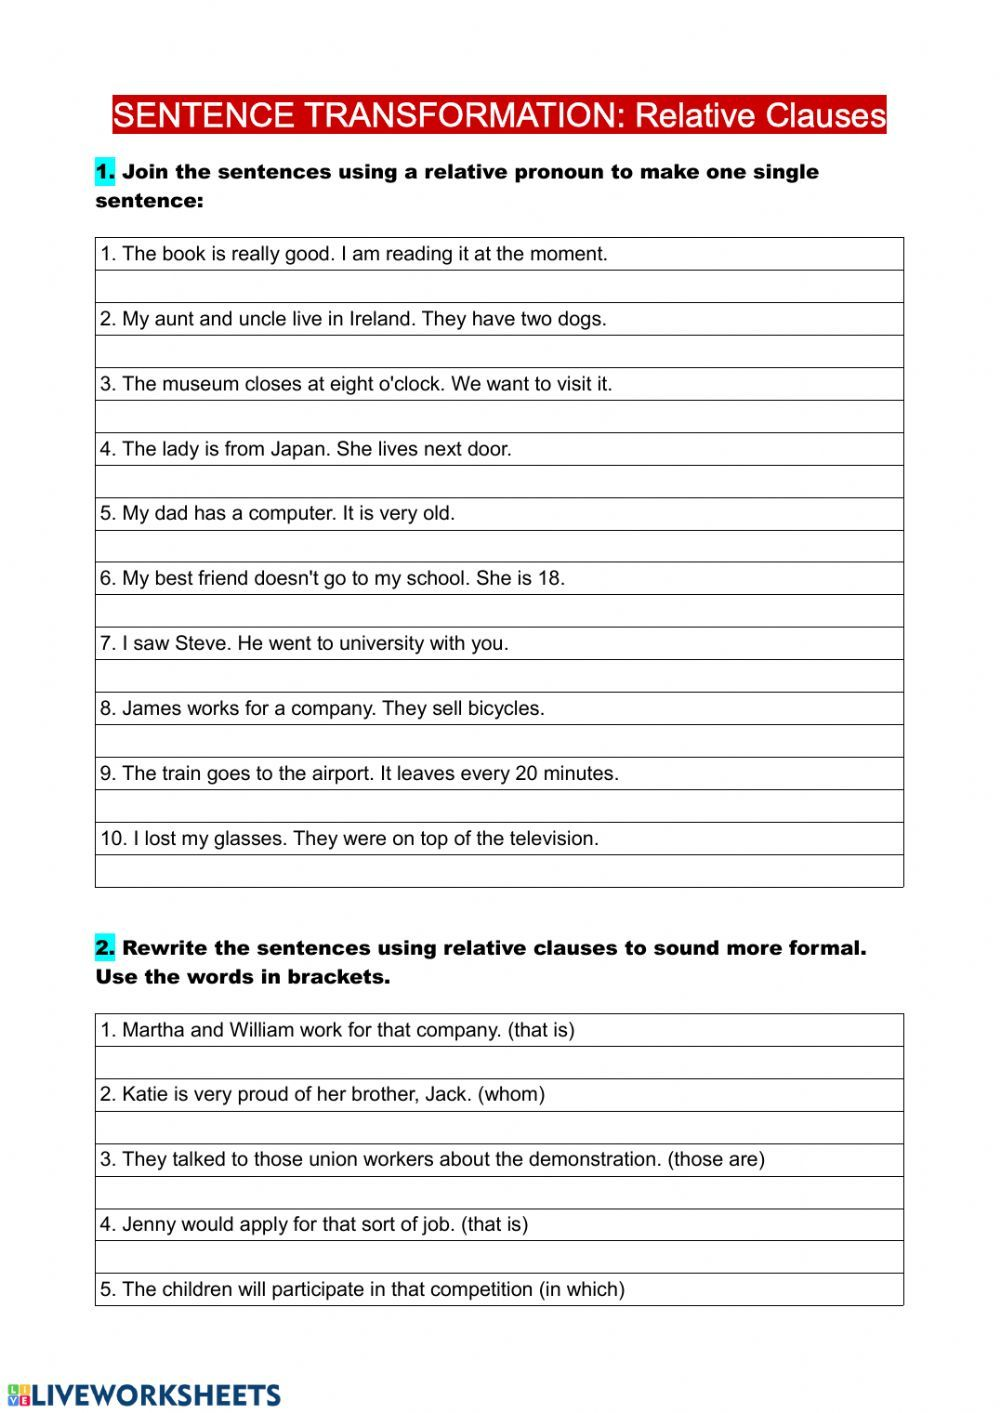 Relative clauses interactive and downloadable worksheet. You can do the  exercises online or download the worksheet as…   Relative clauses [ 1413 x 1000 Pixel ]